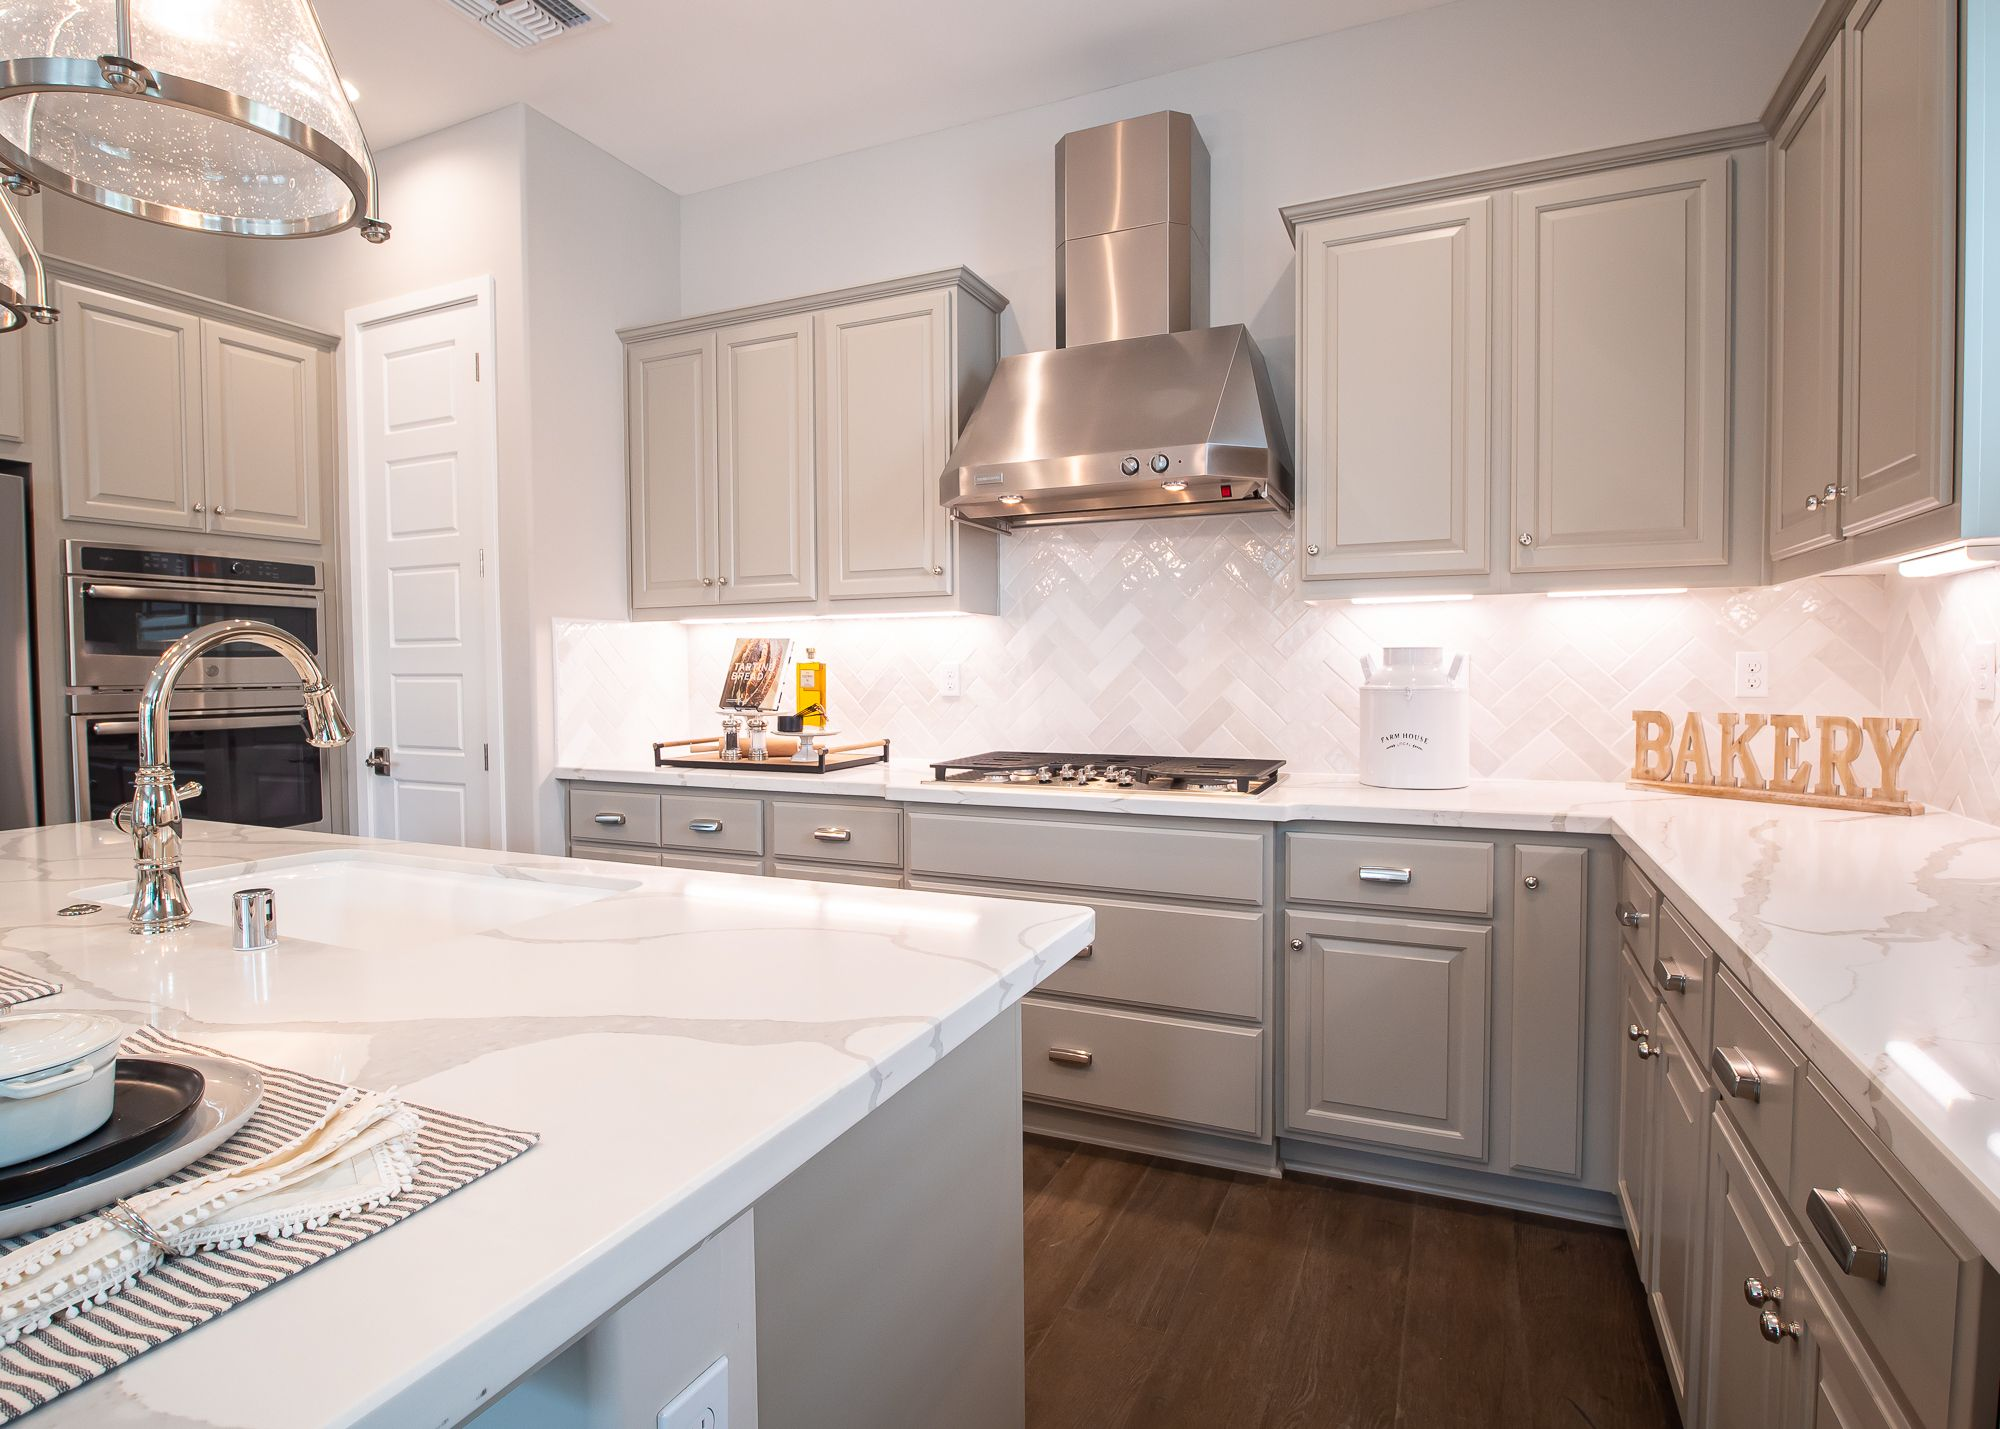 Kitchen featured in the Village Courts Collection Residence 12 By BlackPine Communites